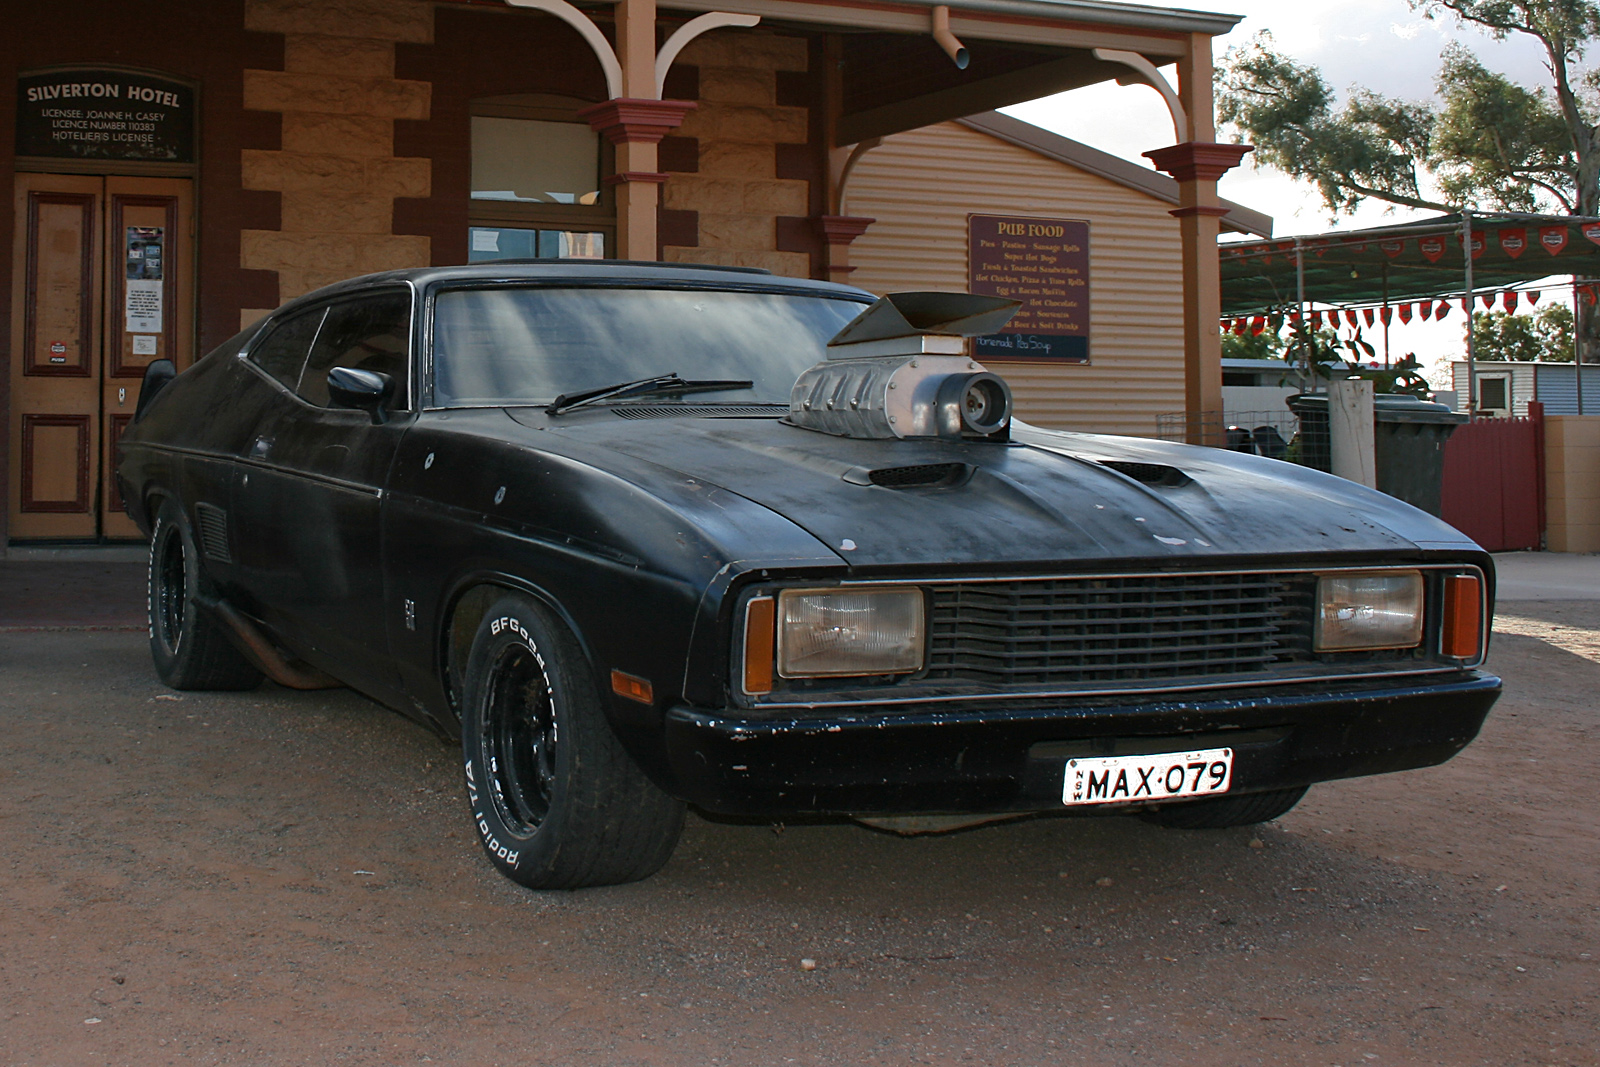 file 07 mad max car at silverton hotel silverton nsw wikipedia. Black Bedroom Furniture Sets. Home Design Ideas